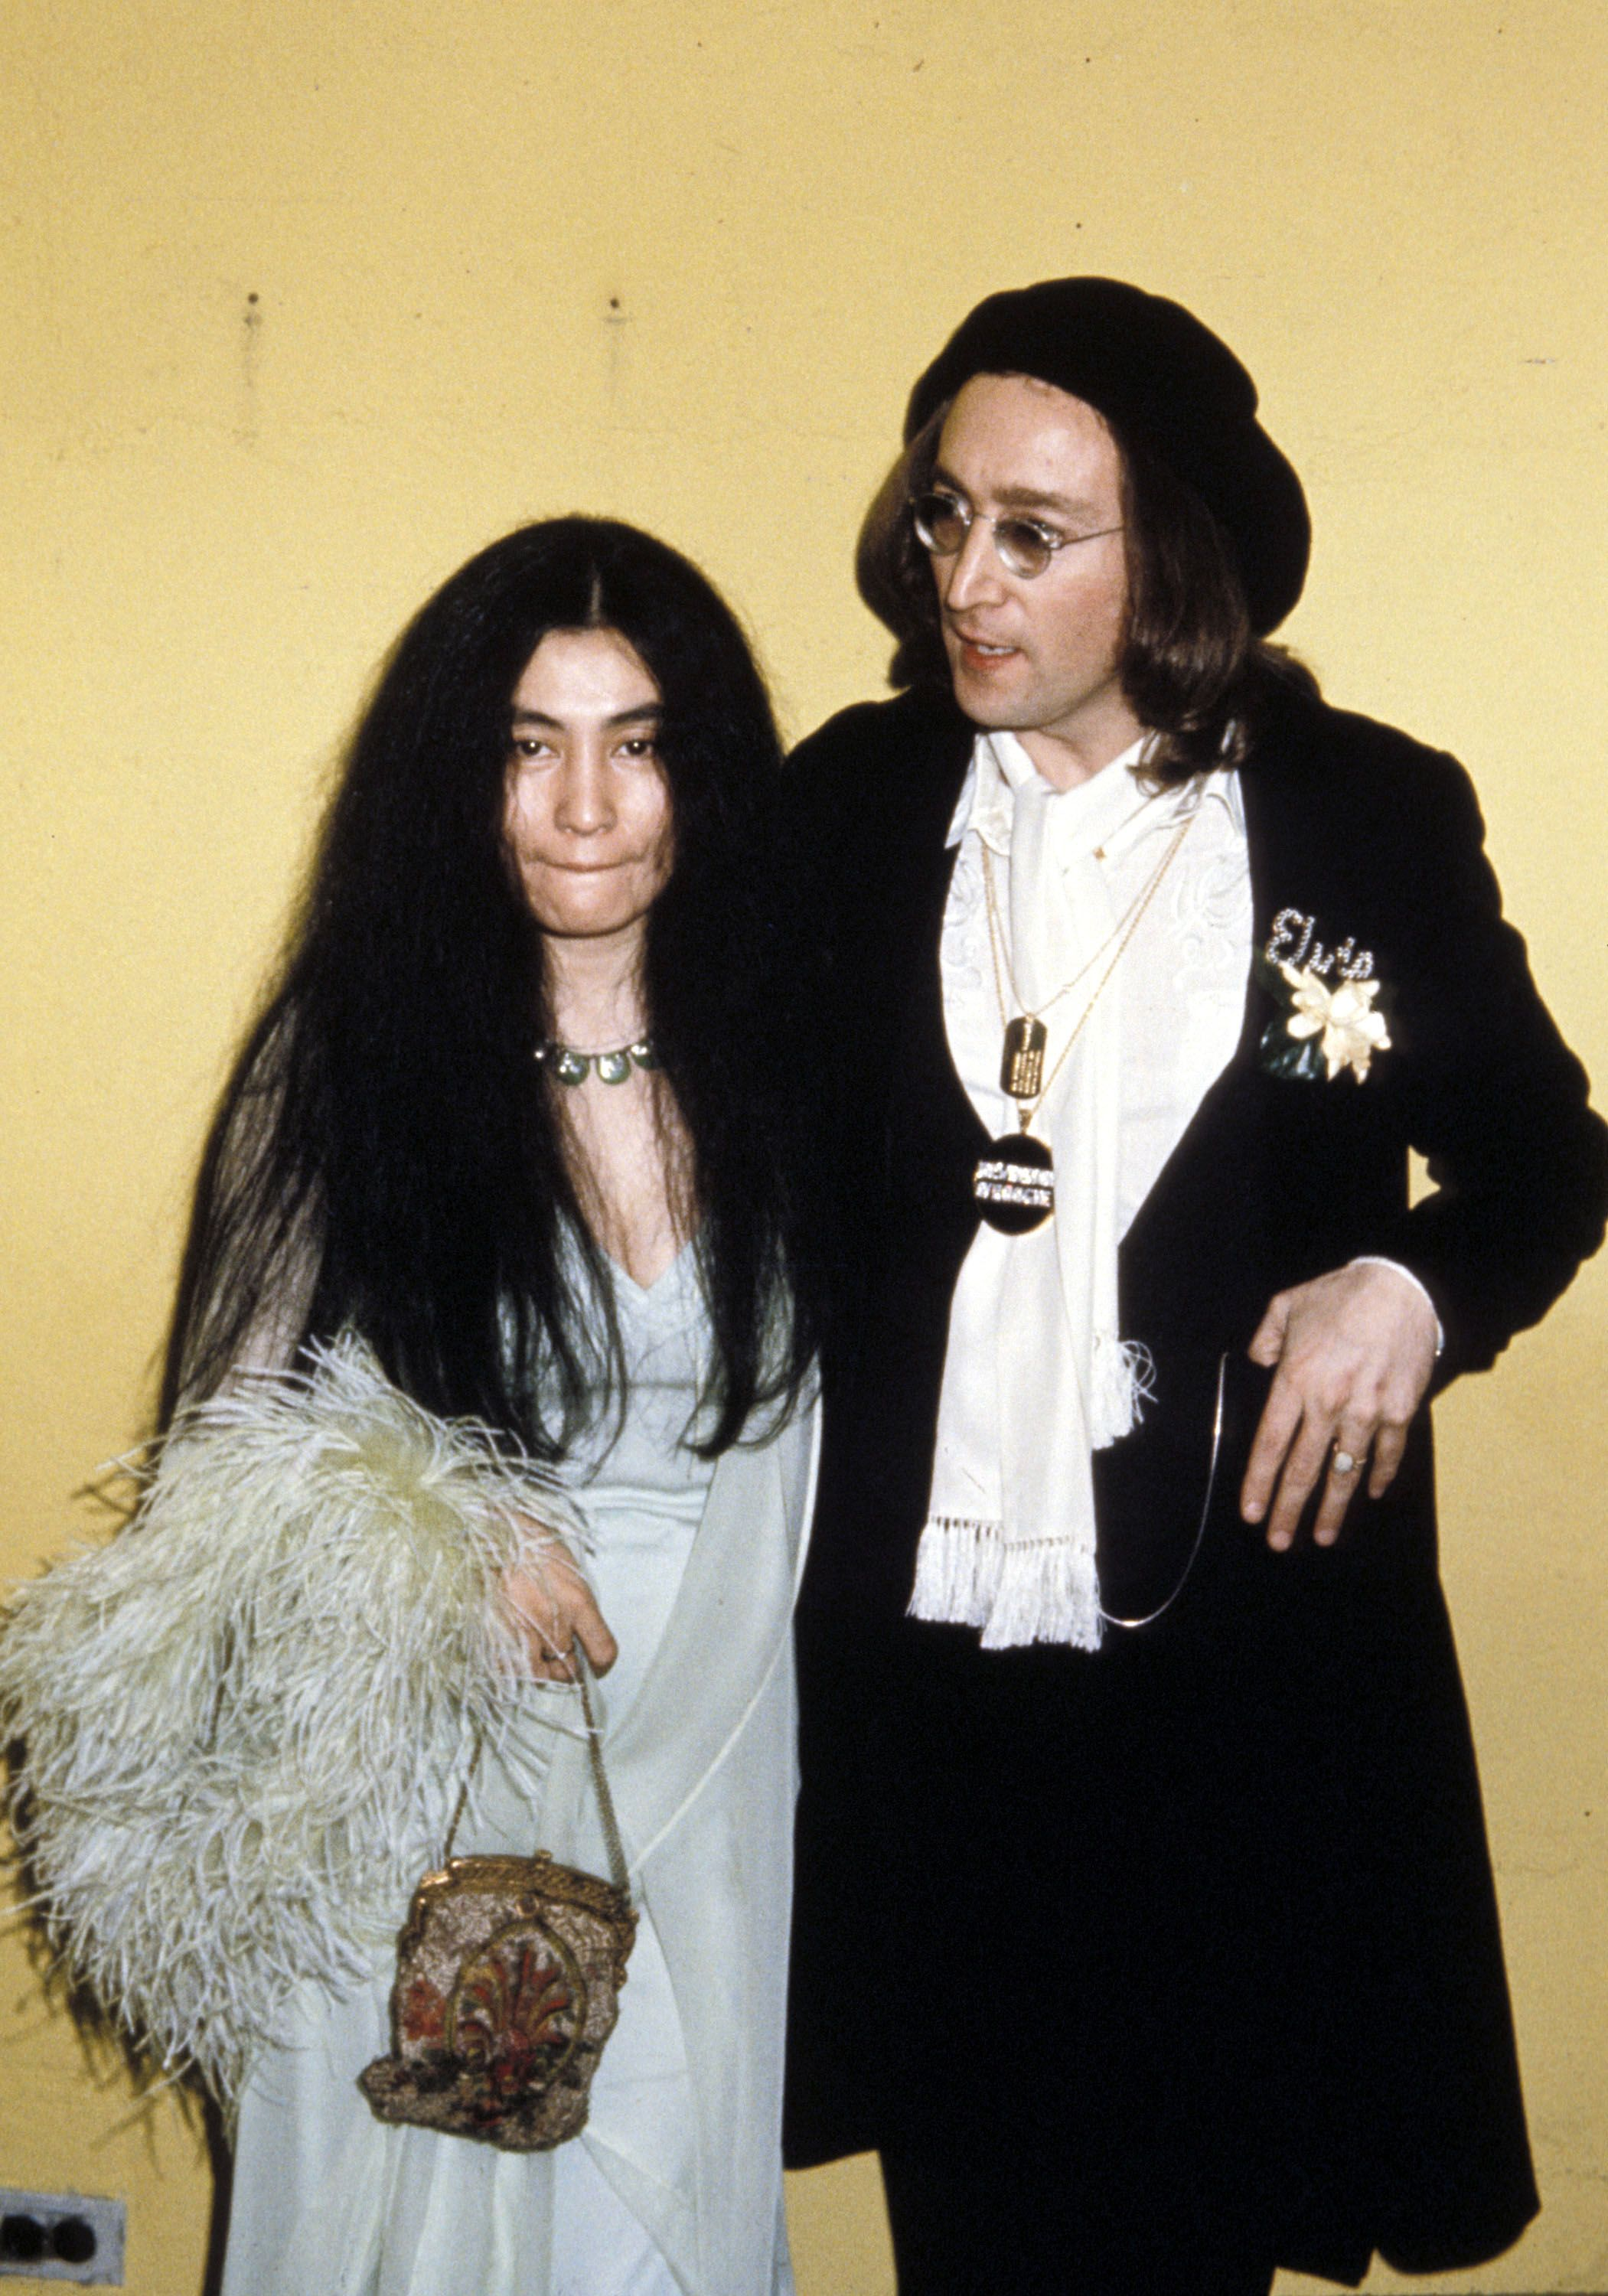 Yoko Ono and John Lennon at the 17th Annual GRAMMY Awards. | Source: Getty Images